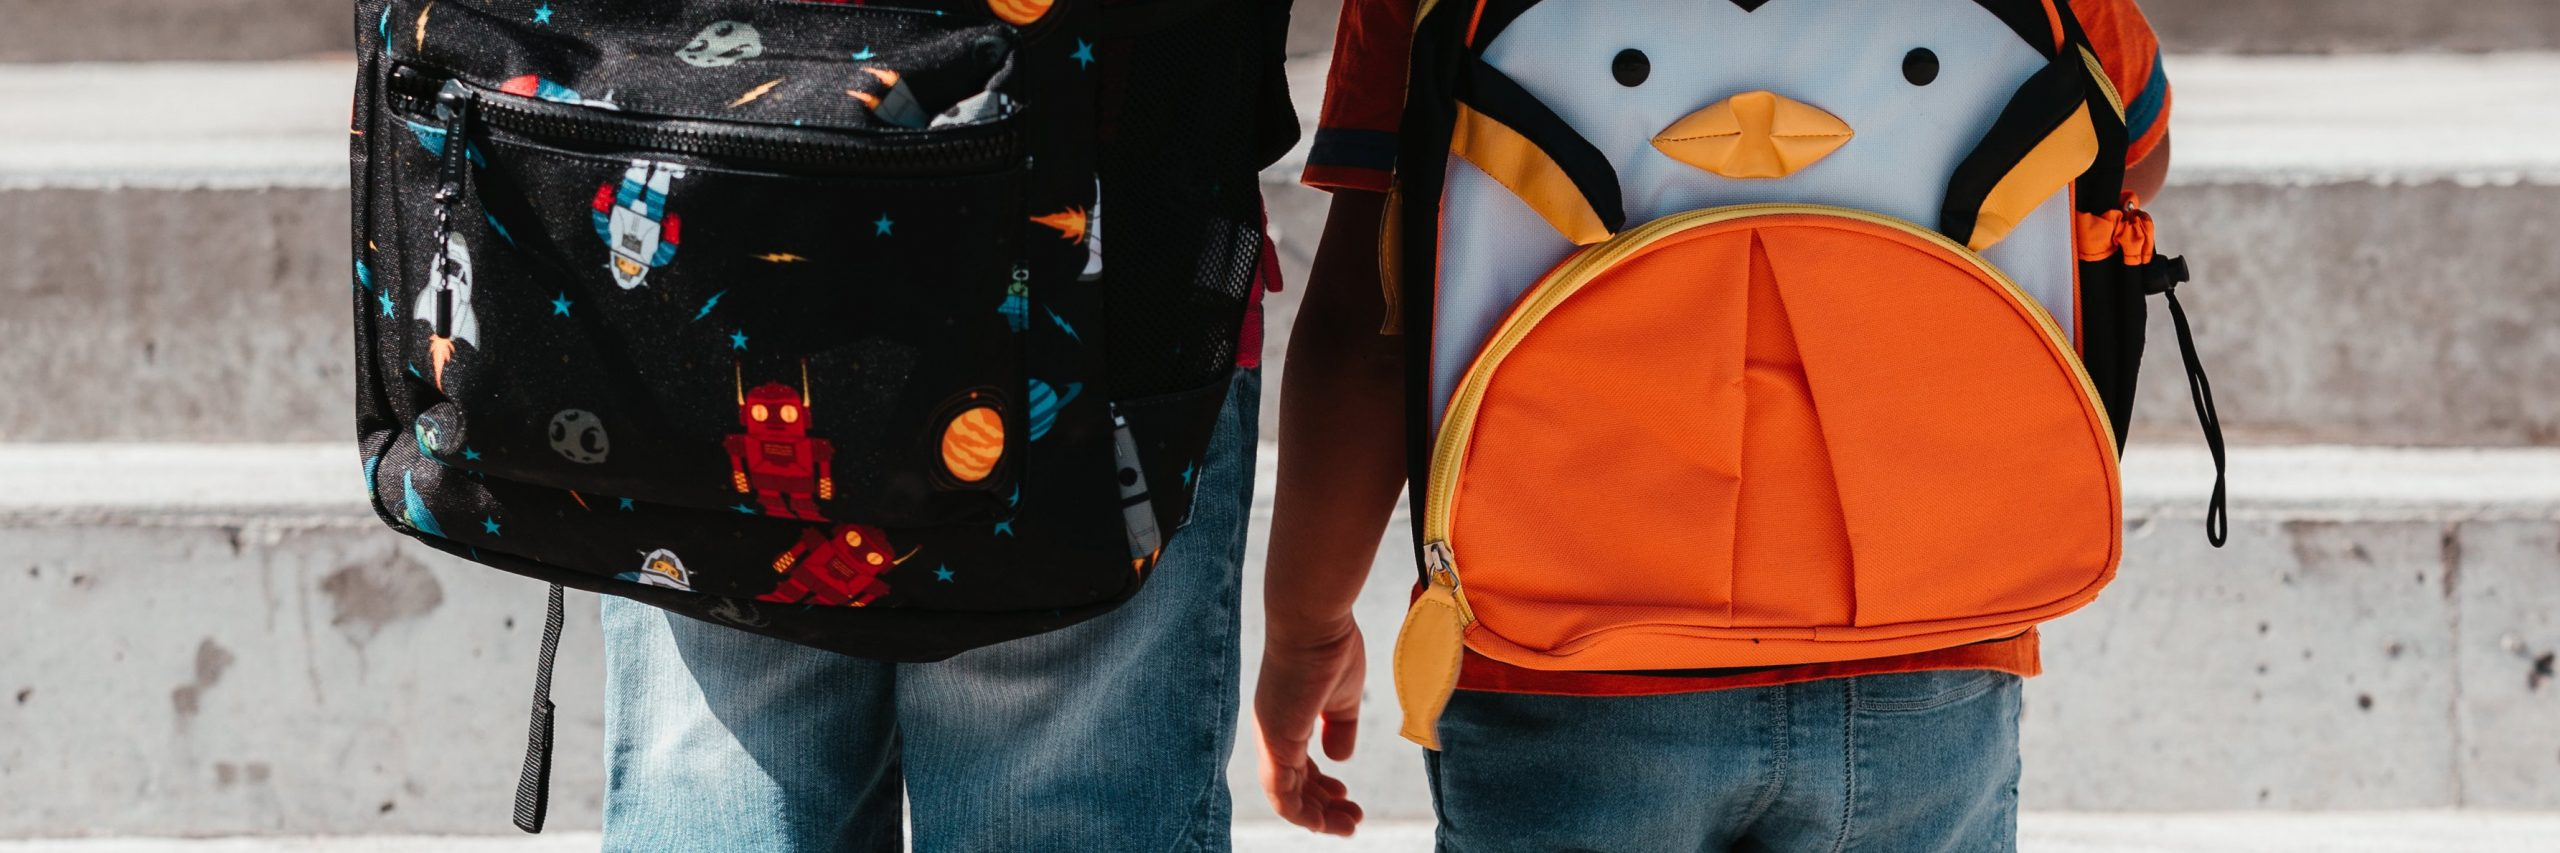 children-wearing-school-bags-2